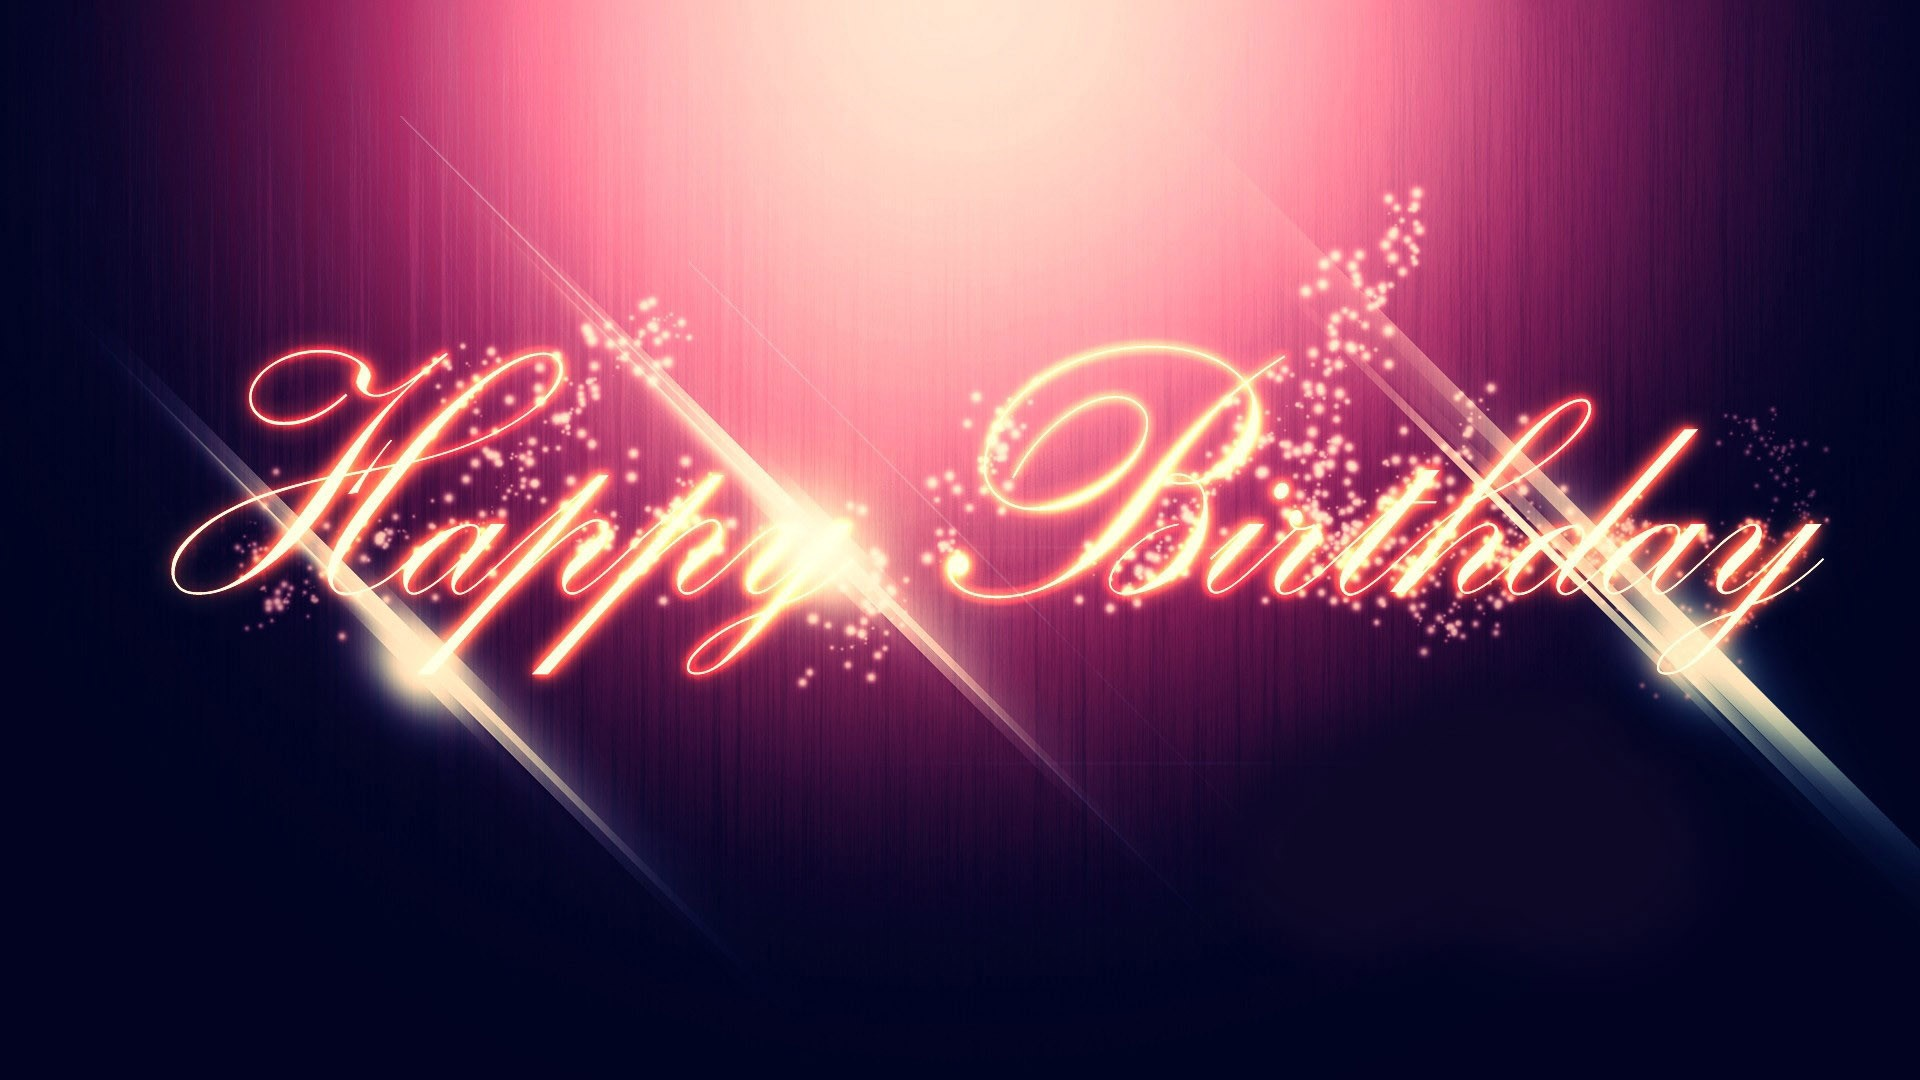 happy birthday wallpaper ·① download free full hd wallpapers for